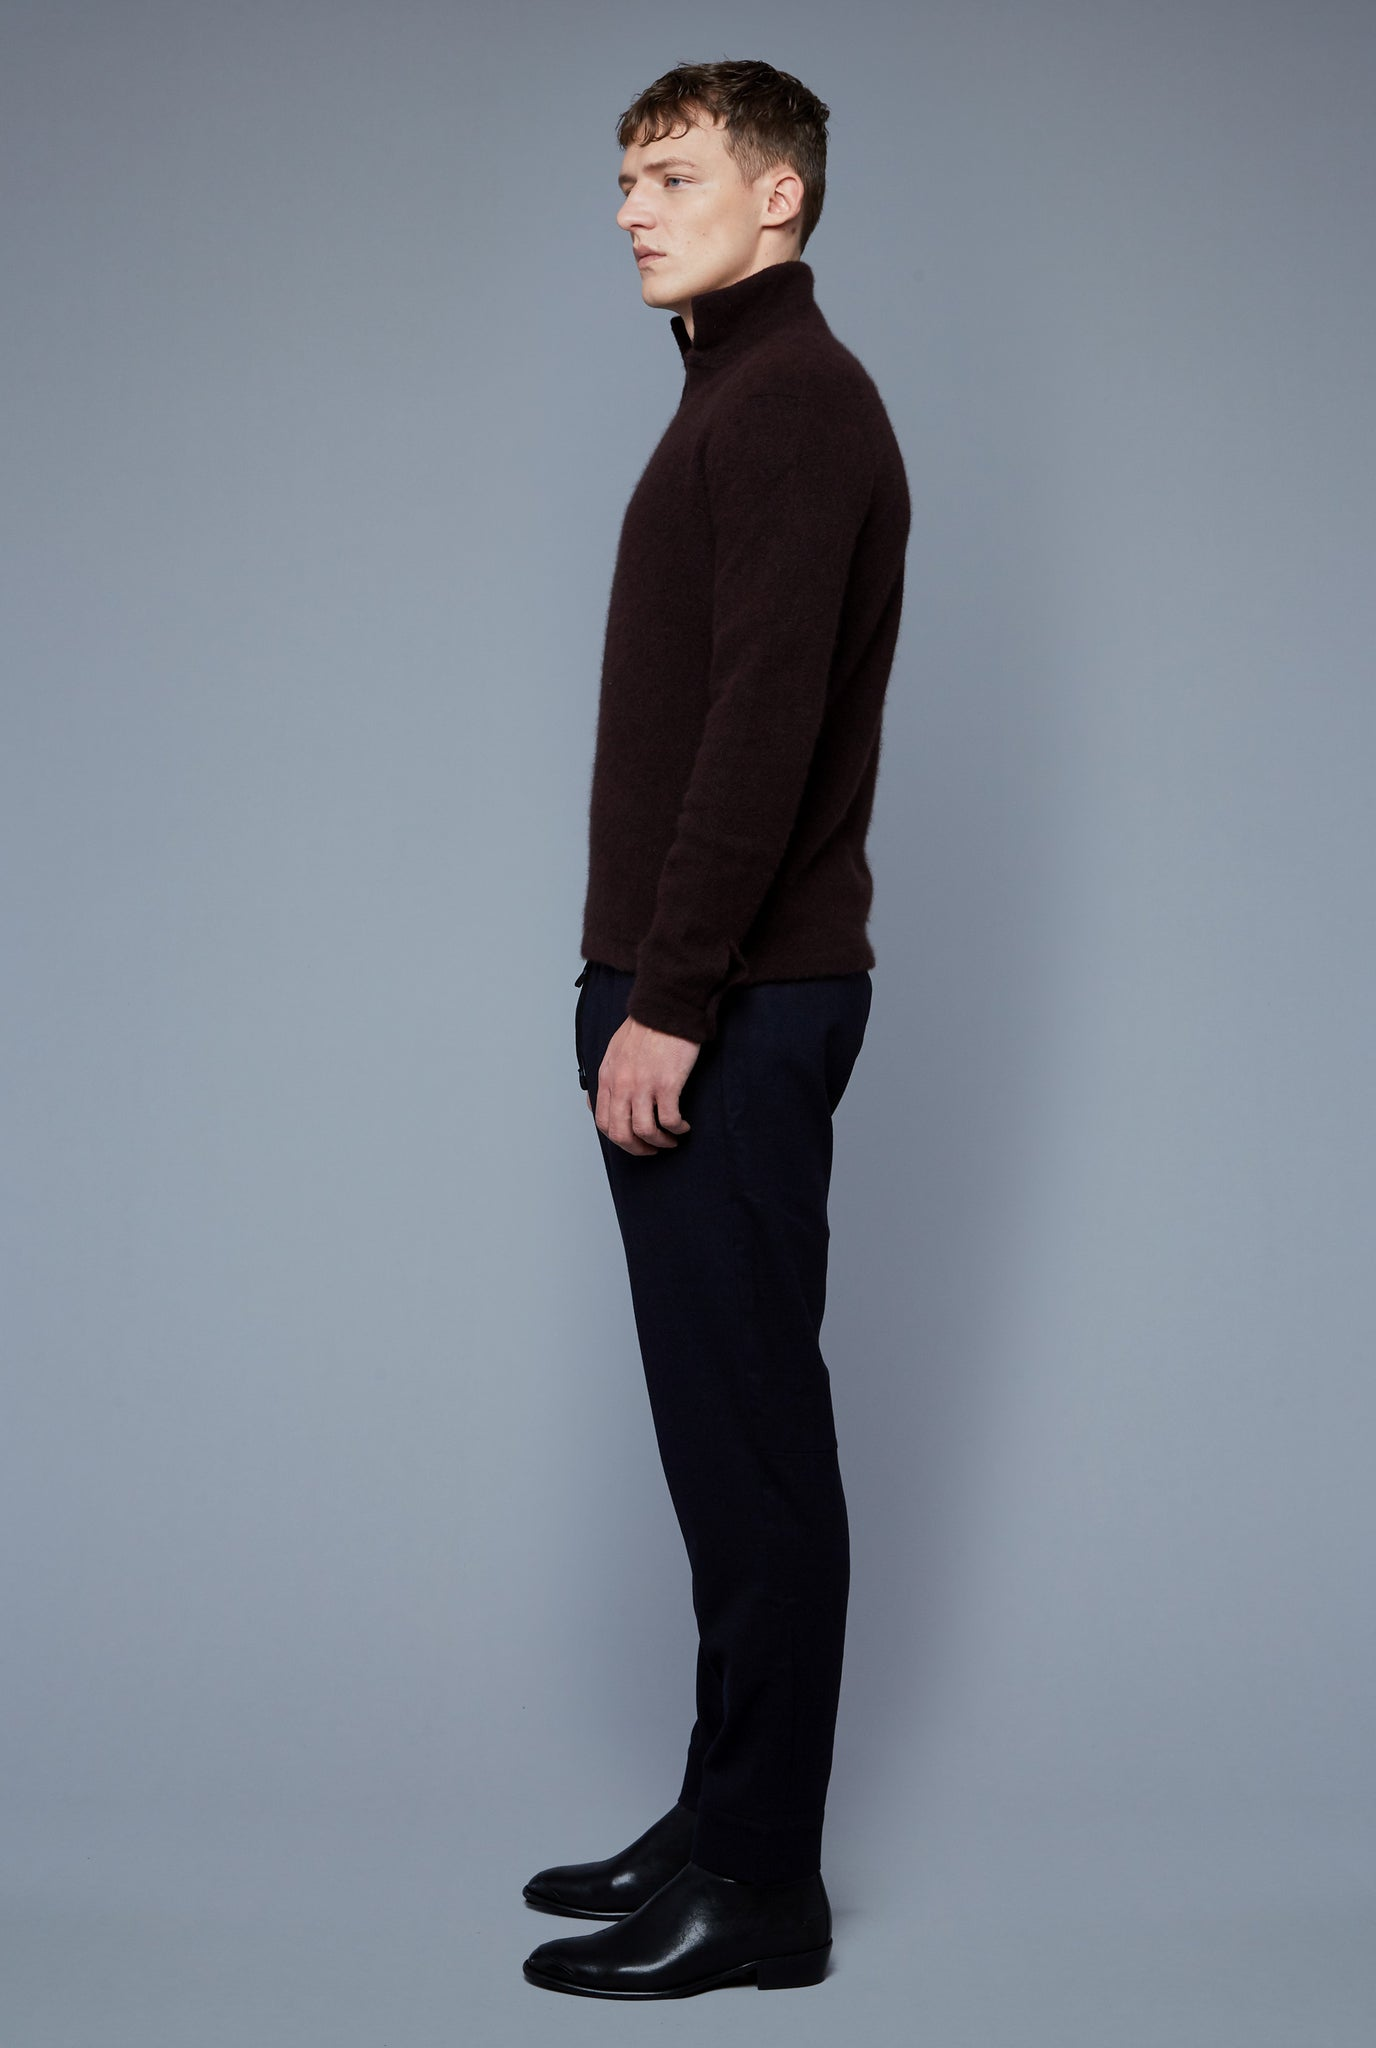 Side View: Model Milos Drago wearing Cashmere Boucle Sweater